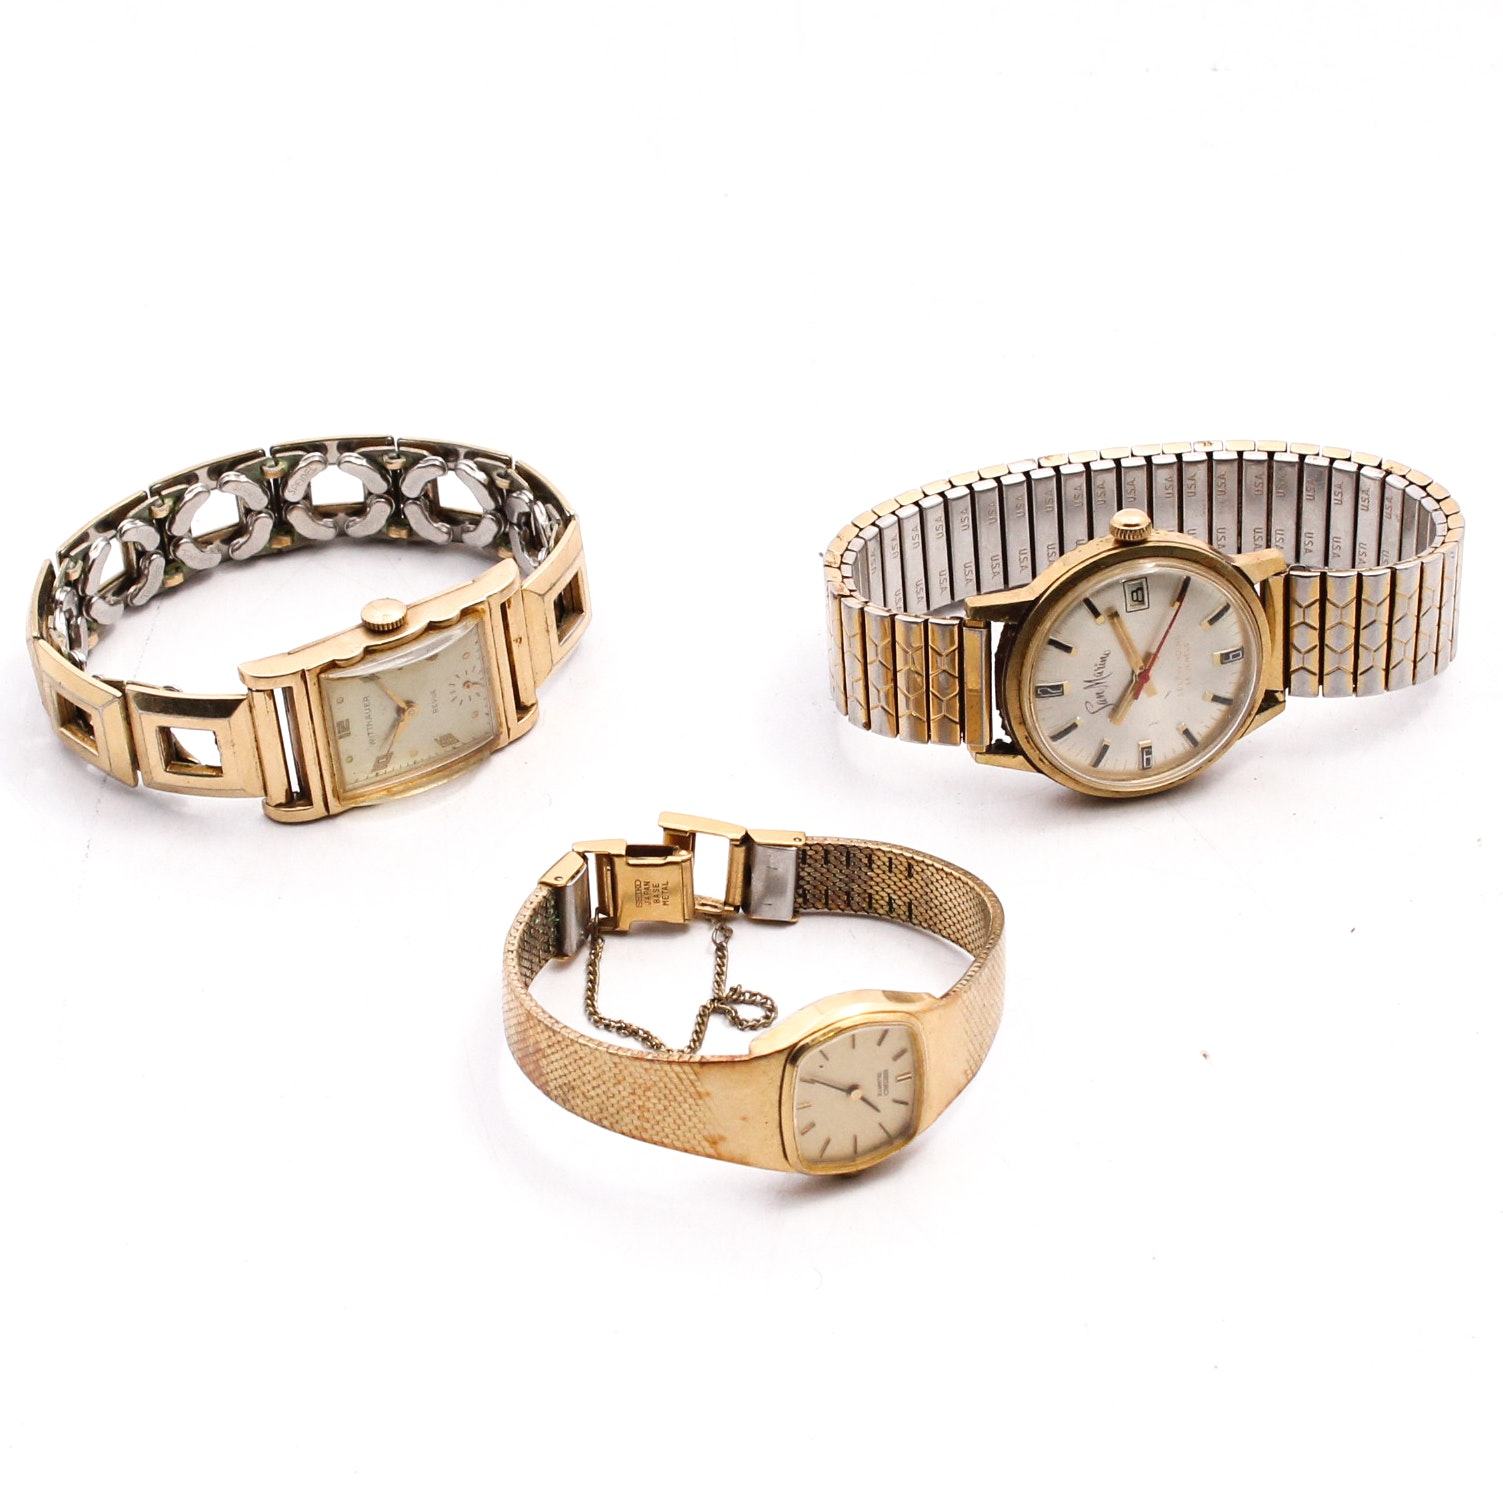 Vintage Wristwatch Collection